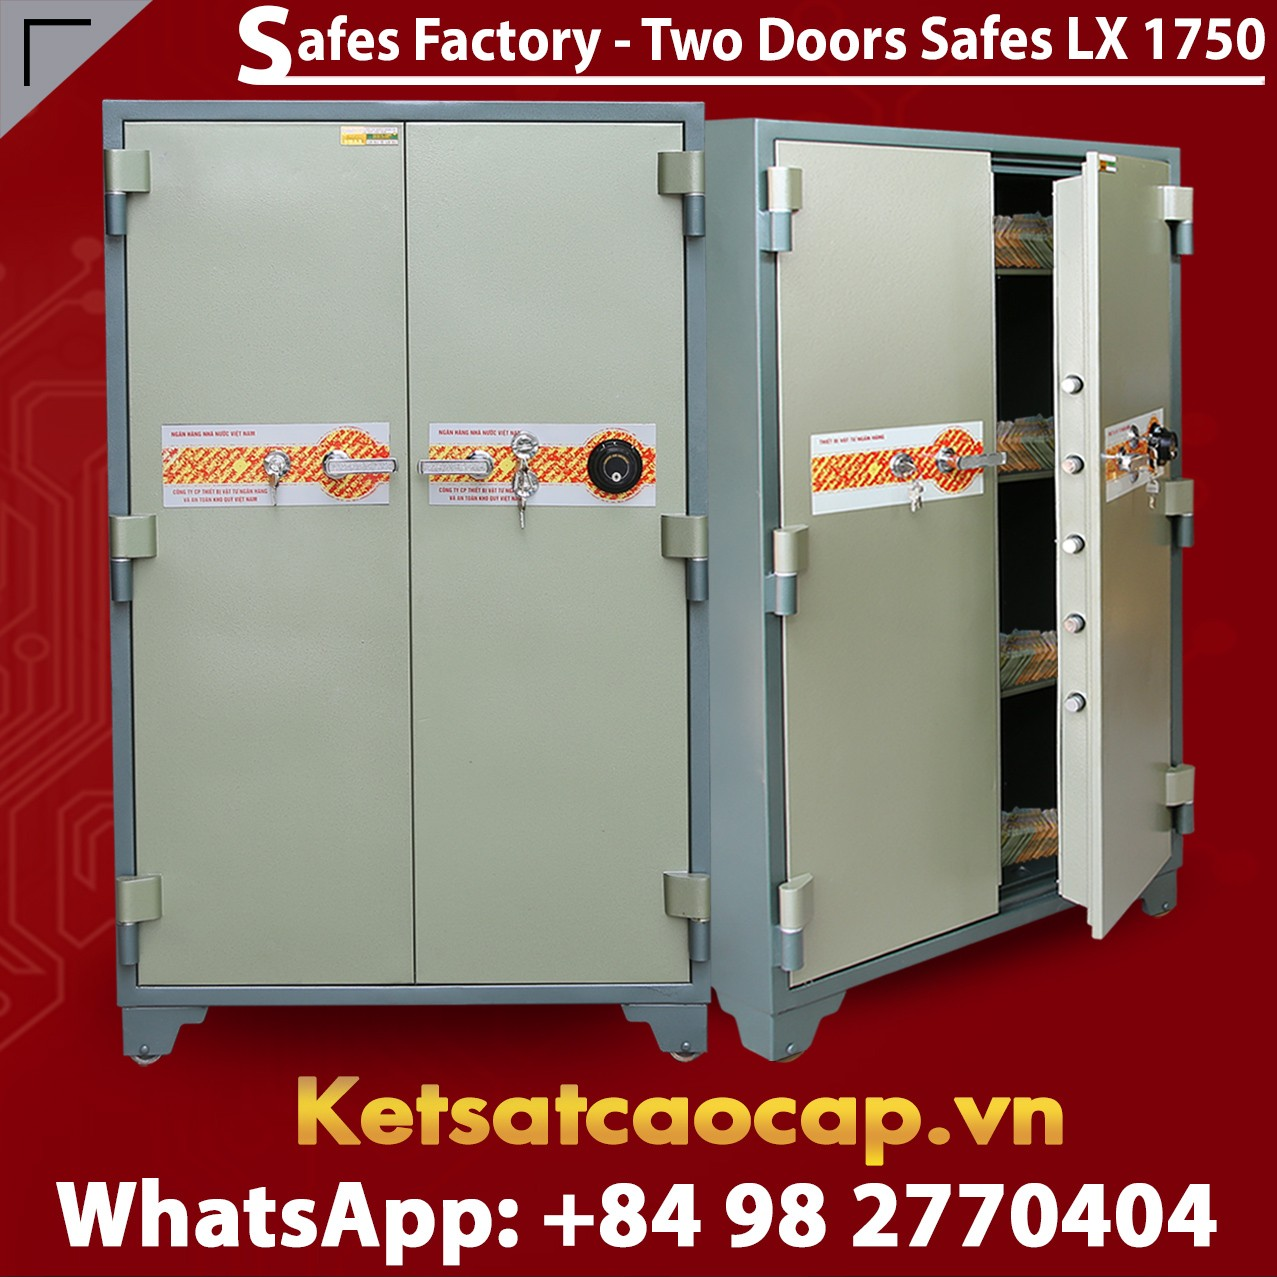 Bank Safe LX1750 DK Two Doors Mordern Design Security